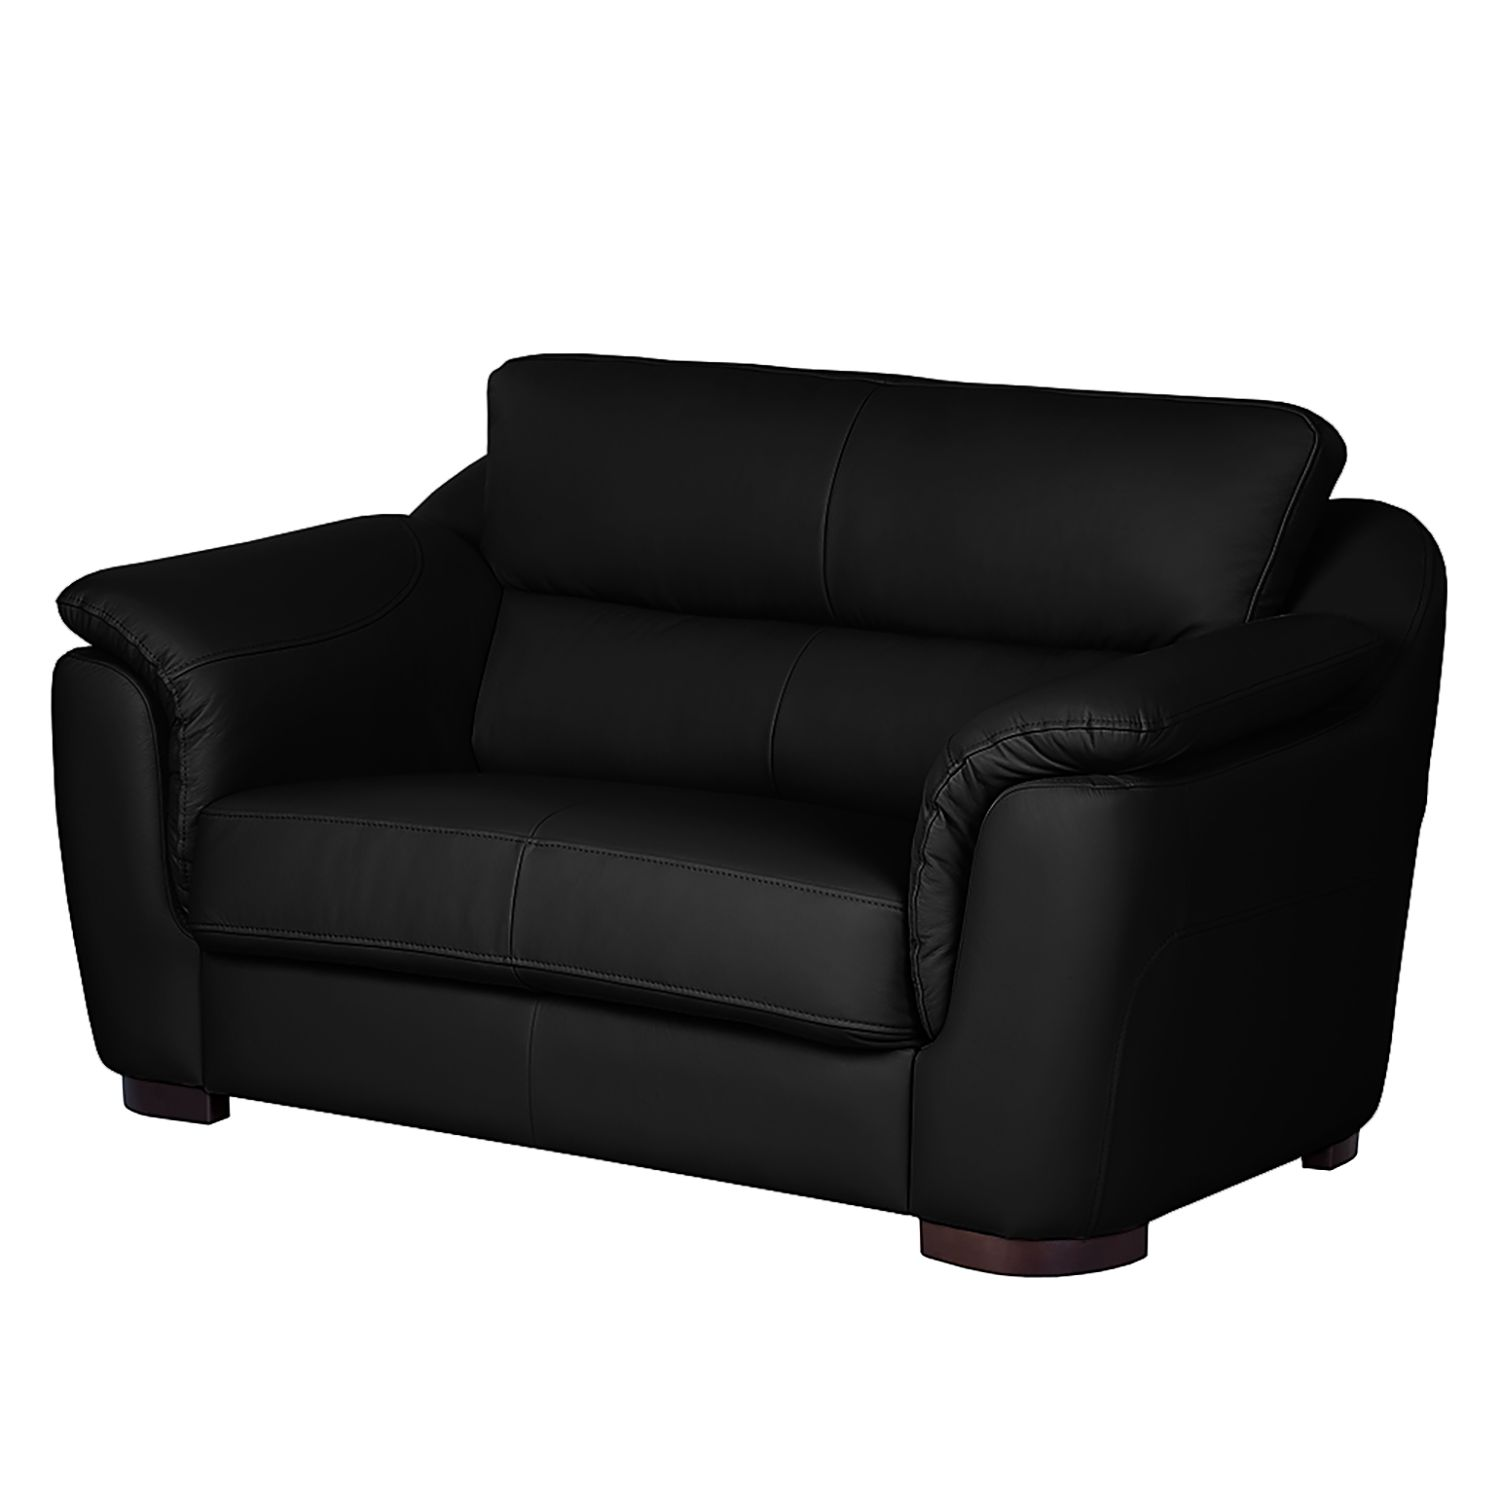 sofa alzira 2 sitzer kunstleder schwarz fredriks online kaufen bei woonio. Black Bedroom Furniture Sets. Home Design Ideas